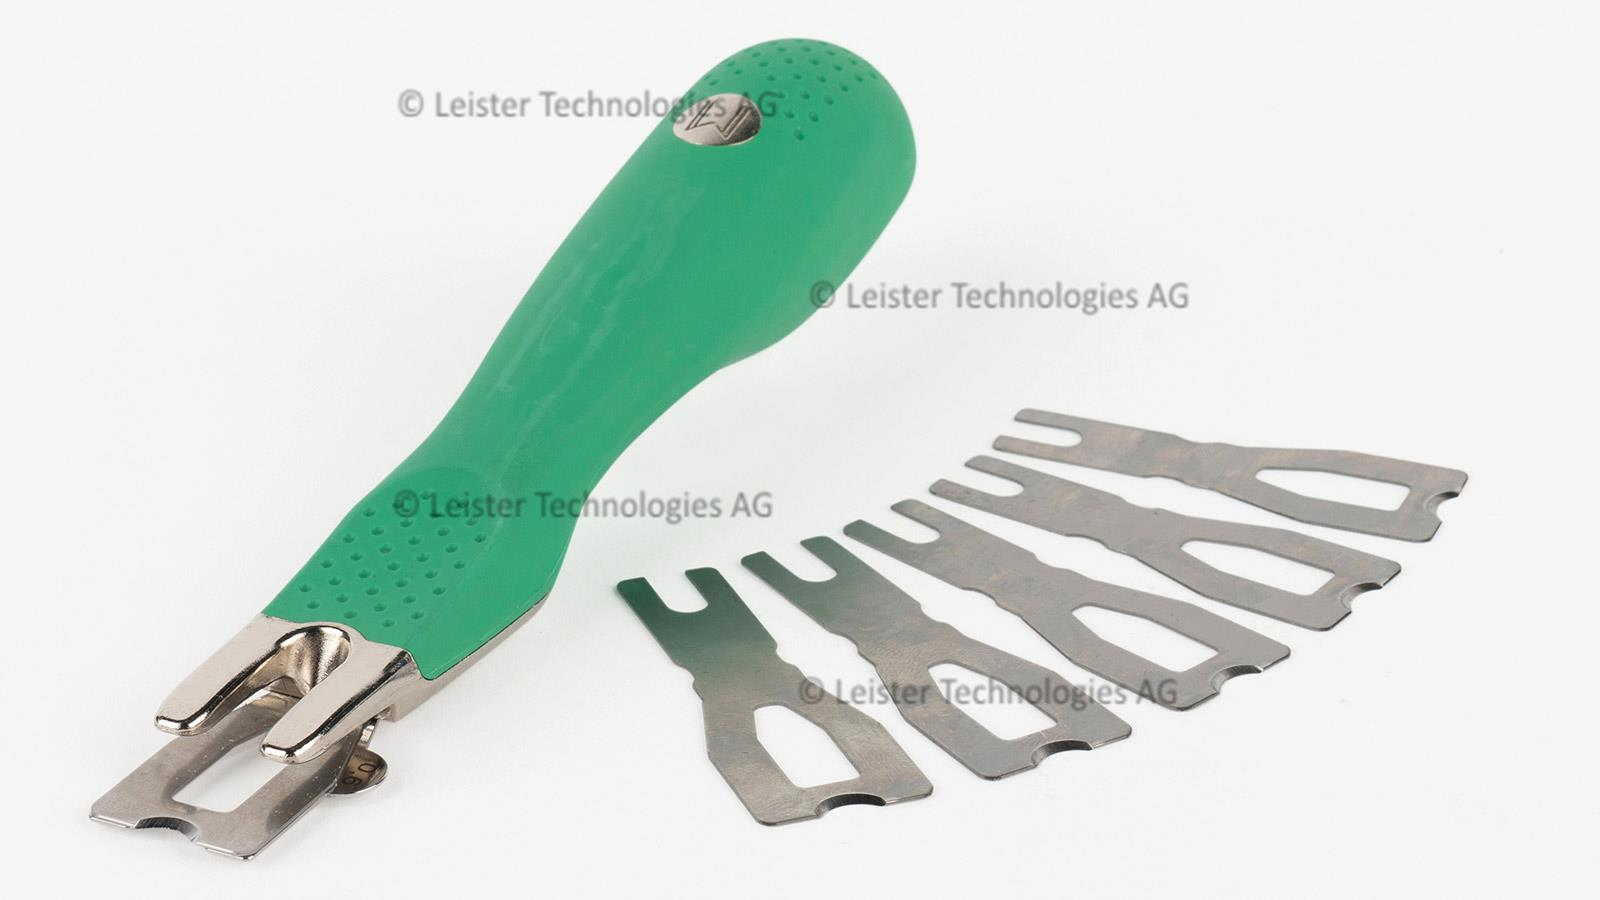 https://leister.azureedge.net/-/media/images/leister_internet/335-ltag-pw-ph-accessories/leister-accessories/messer/117_000_trimming_knife_kit.jpg?revision=9f34e59a-6253-4729-8bcc-5f892ed122f9